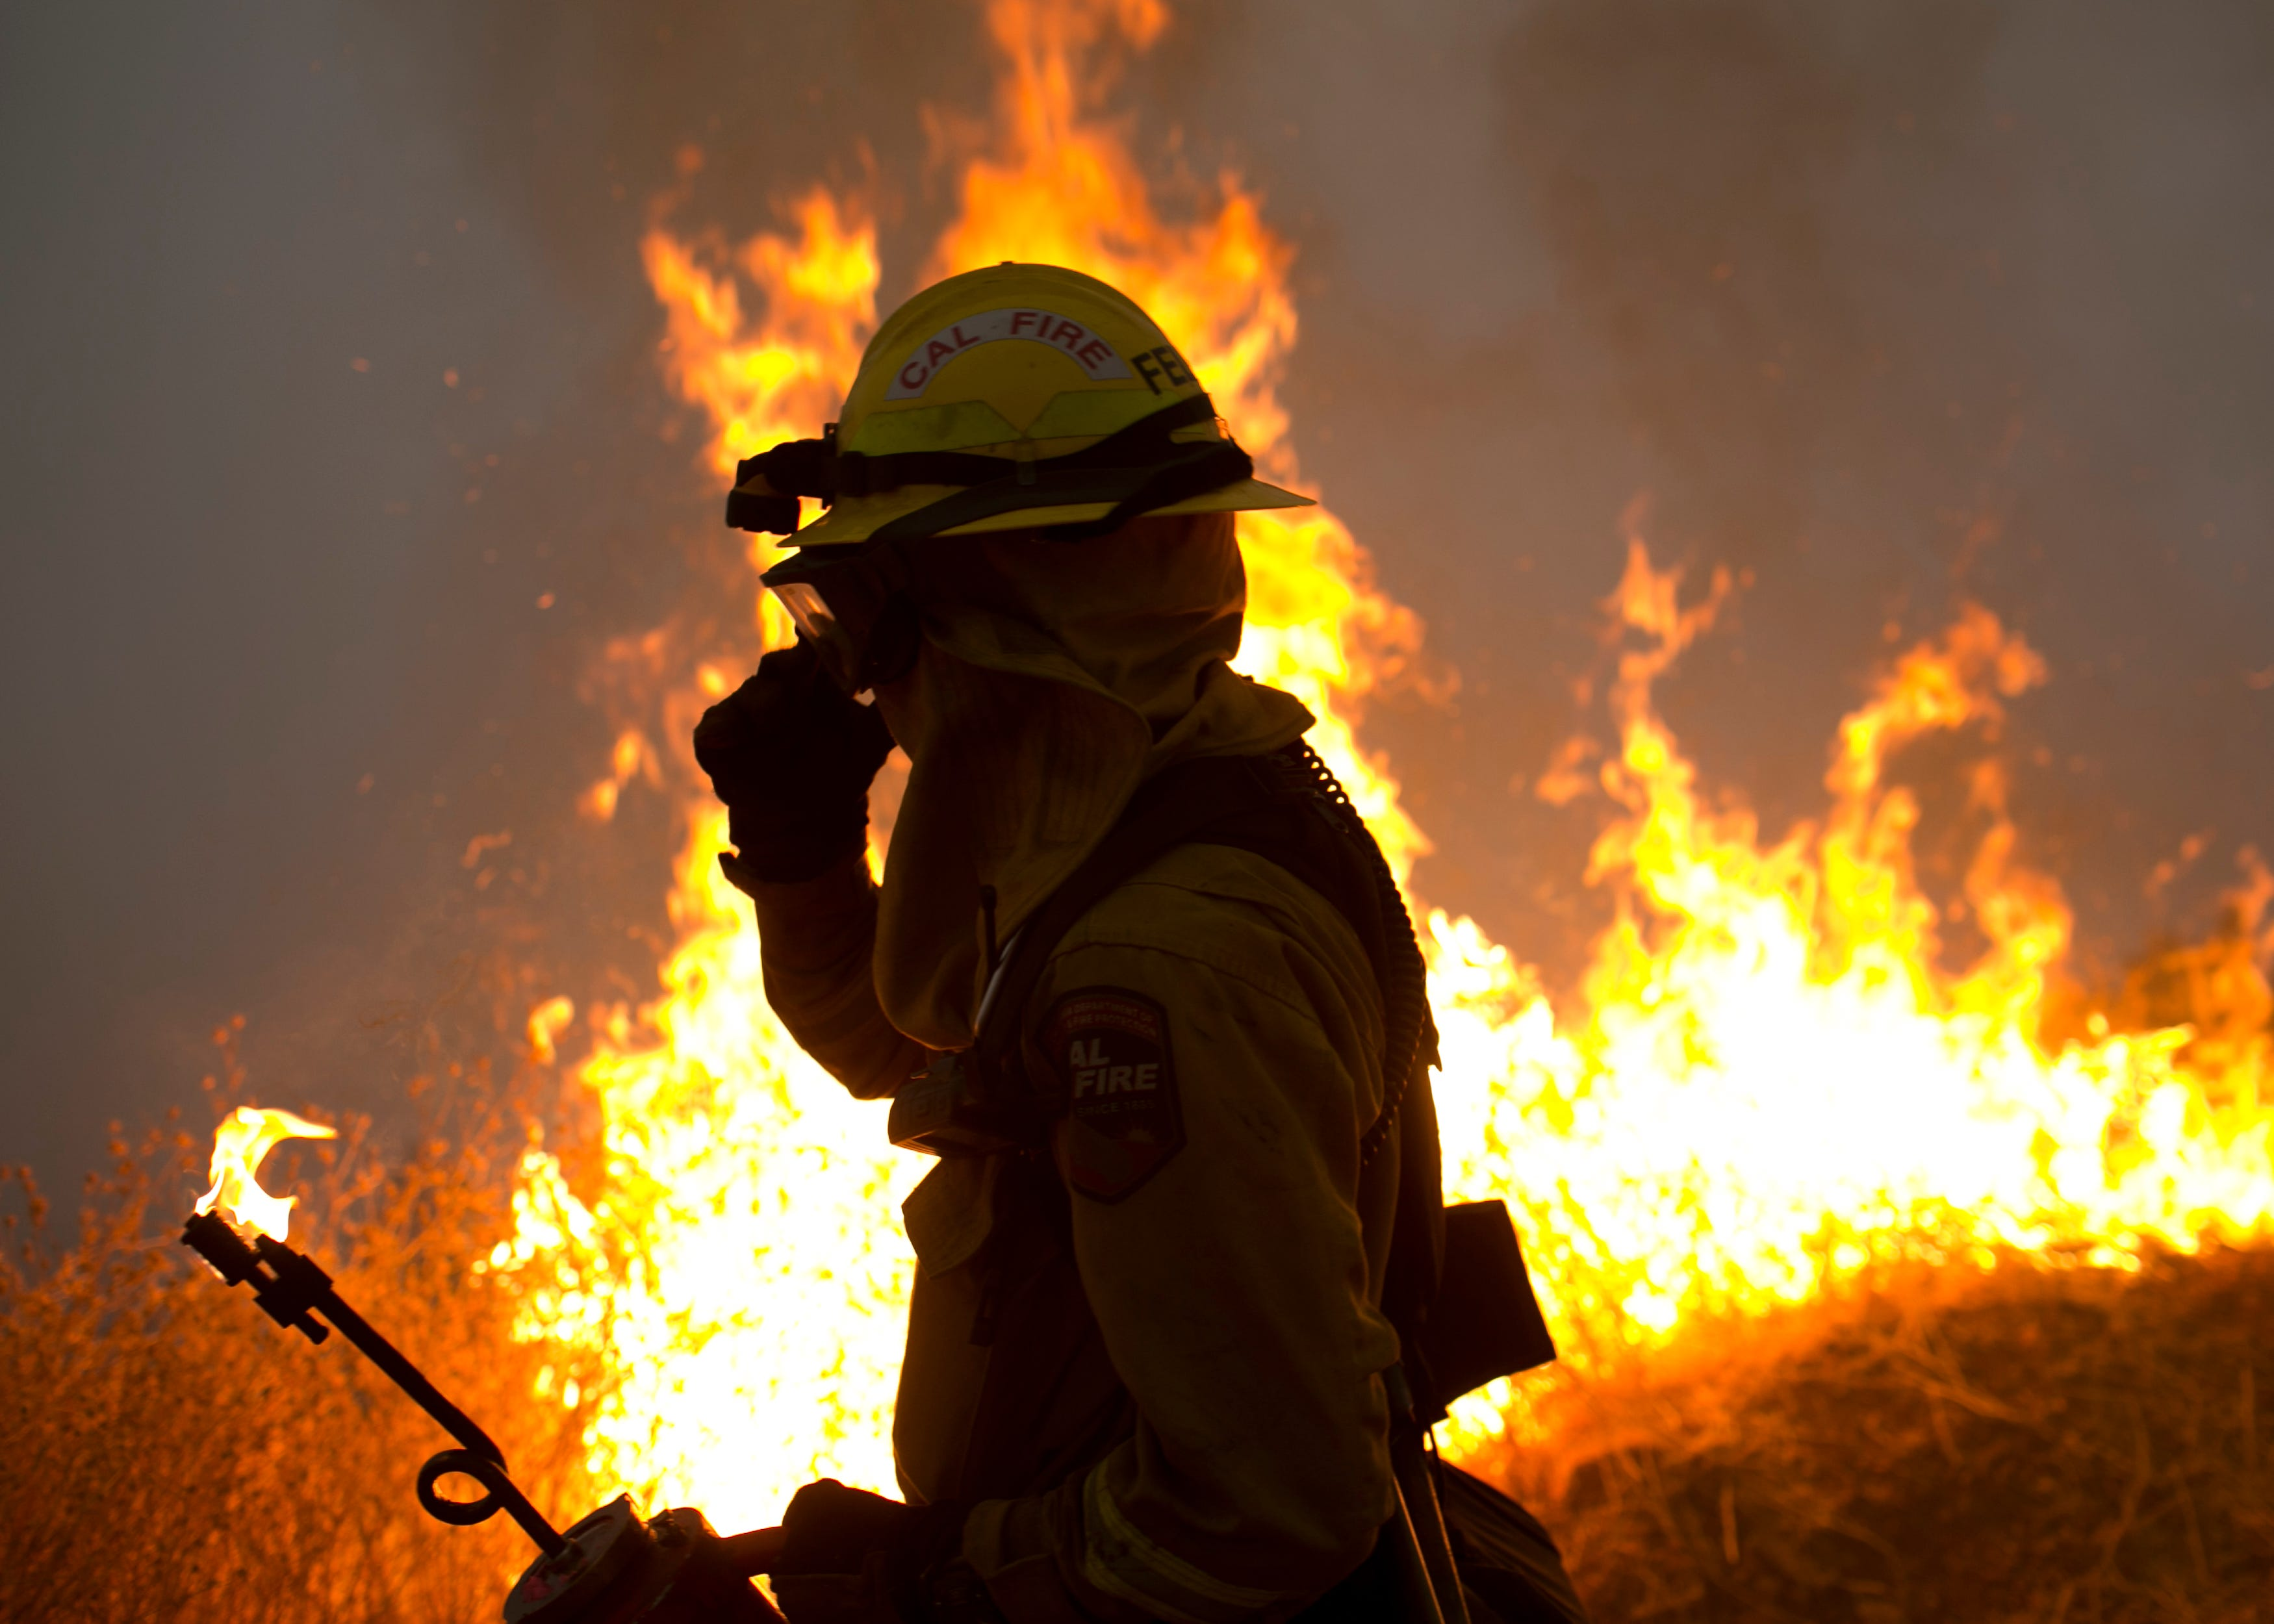 A firefighter helps ignite a controlled burn in an attempt to halt the Camp Fire on Nov. 14, 2018.